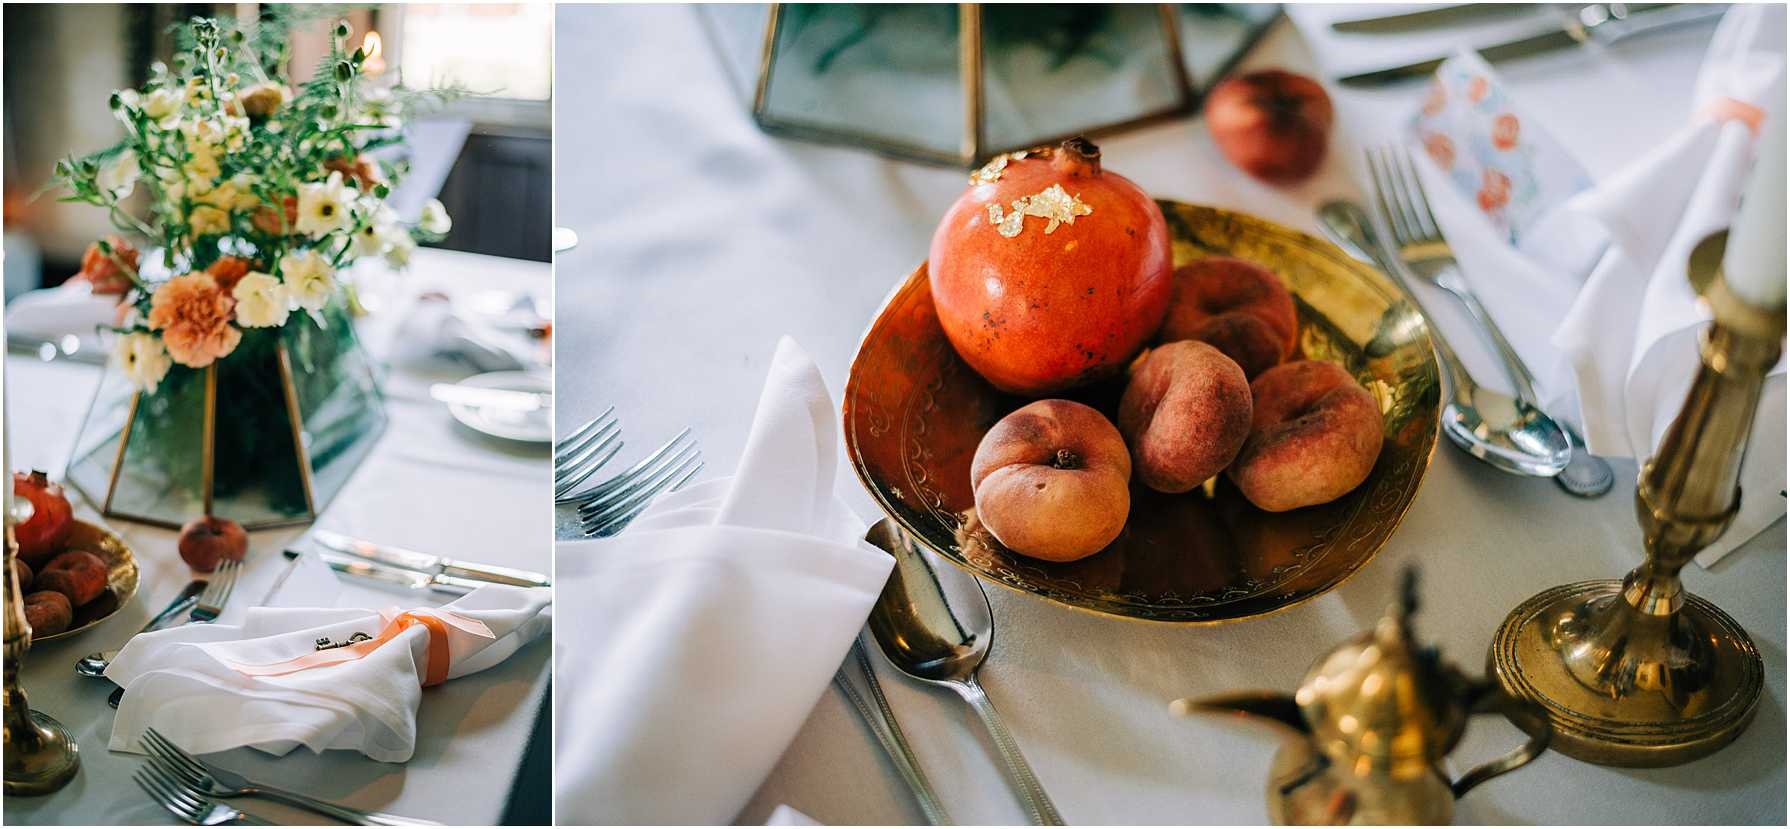 wedding breakfast table with peaches in a bowl